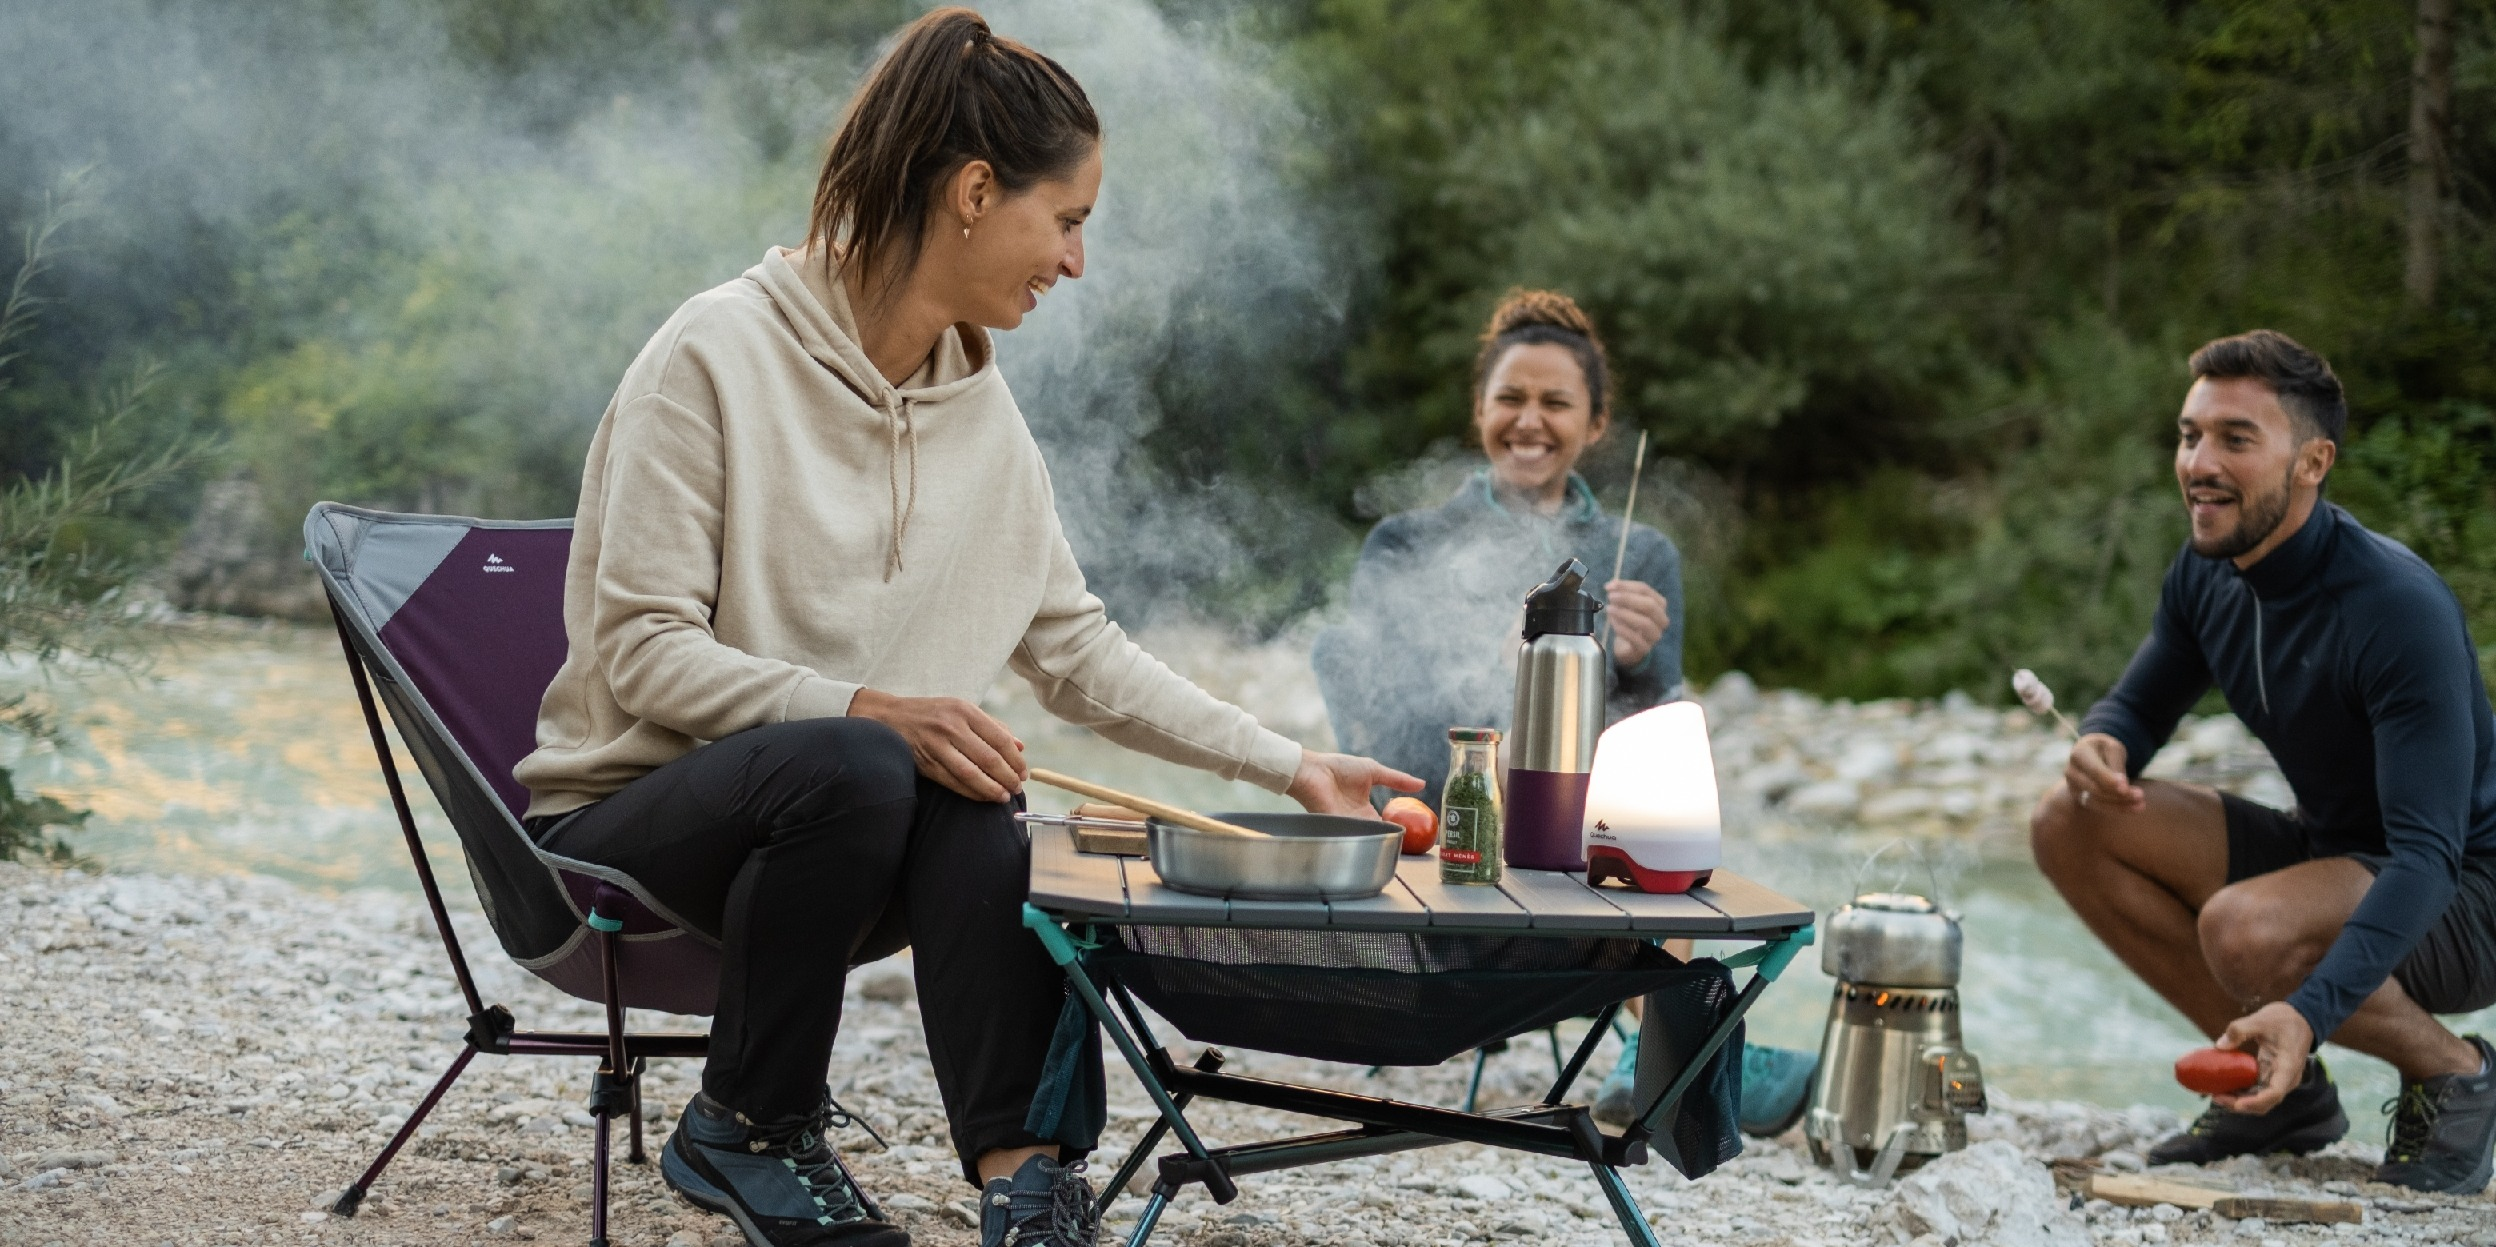 What Nutritional & Physical Training Can Help With Camping For Beginners?